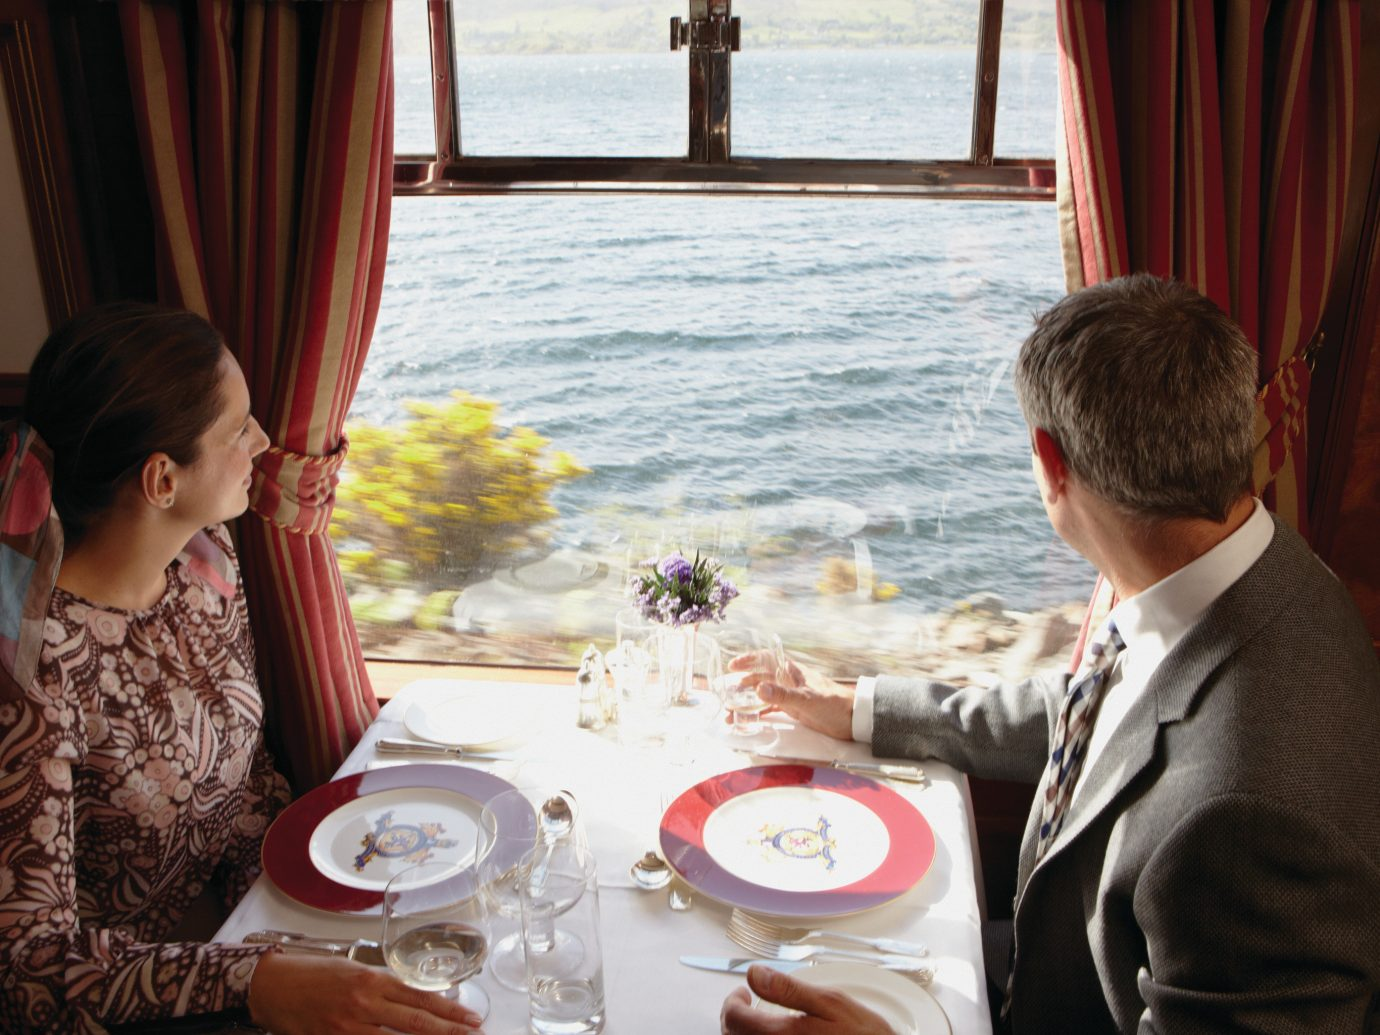 Romance Trip Ideas person table people wedding ceremony meal marriage dining table